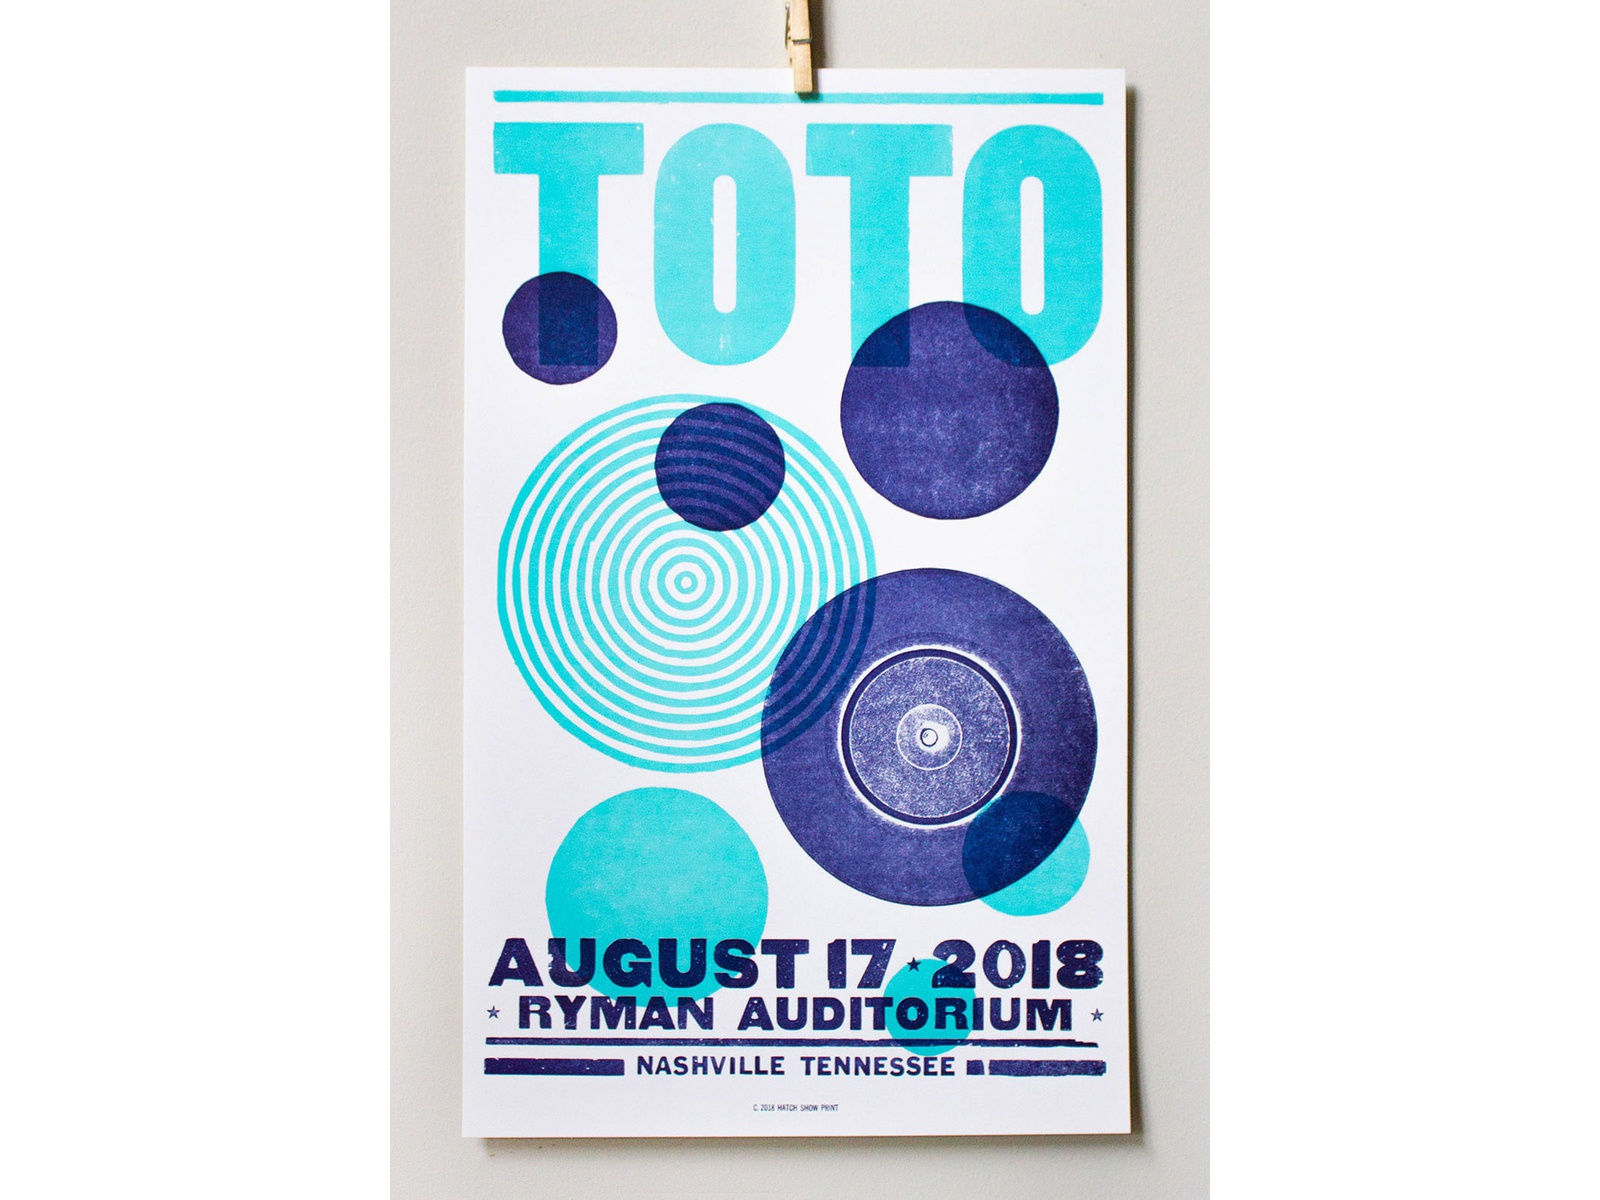 Toto Show Poster africa intern overlay musician transparency letterpress printing ryman printmaking printing letterpress design jefferson nashville bands music gig hatch show print gig poster show poster toto